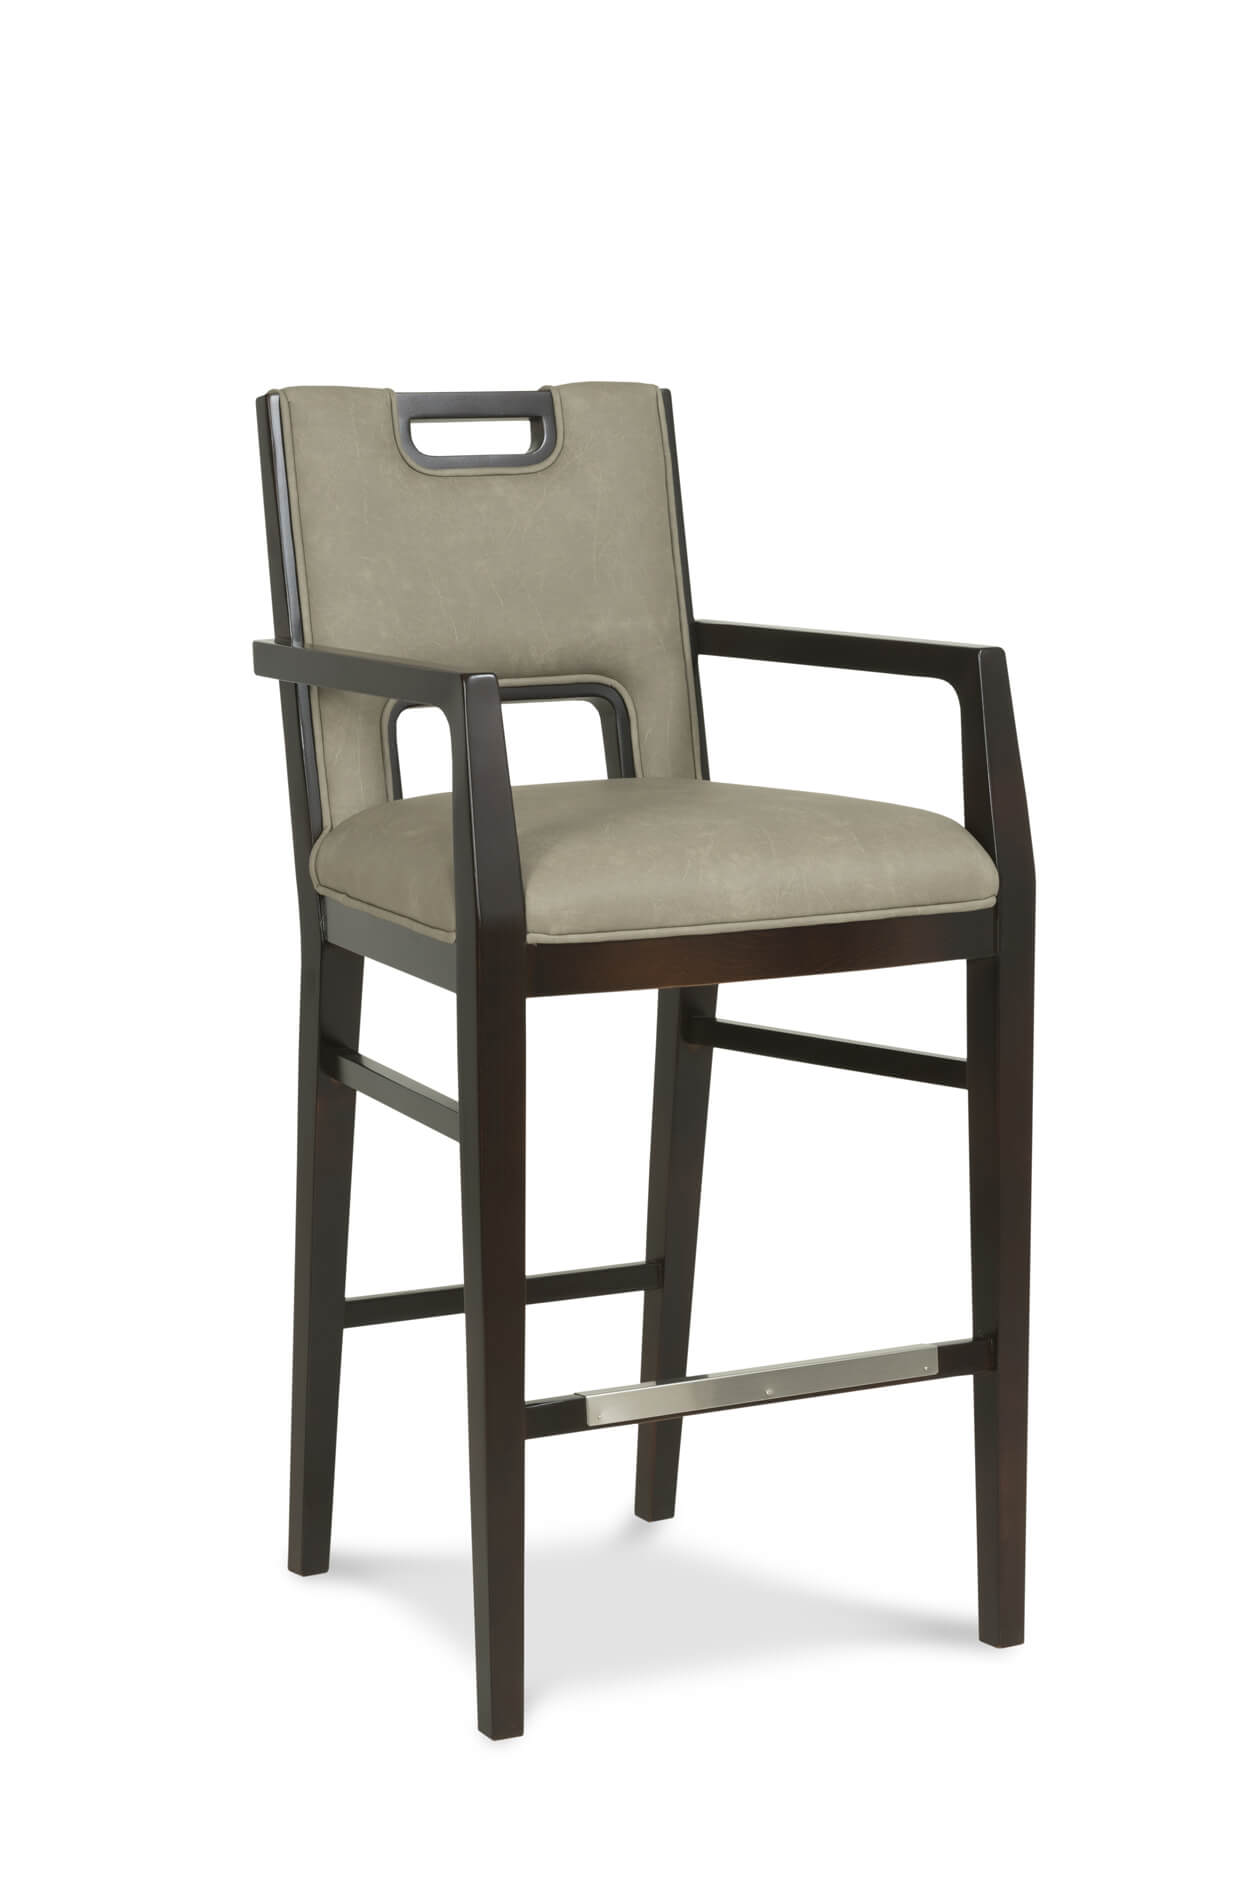 Fairfield S Holmes Modern Wooden Bar Stool With Arms